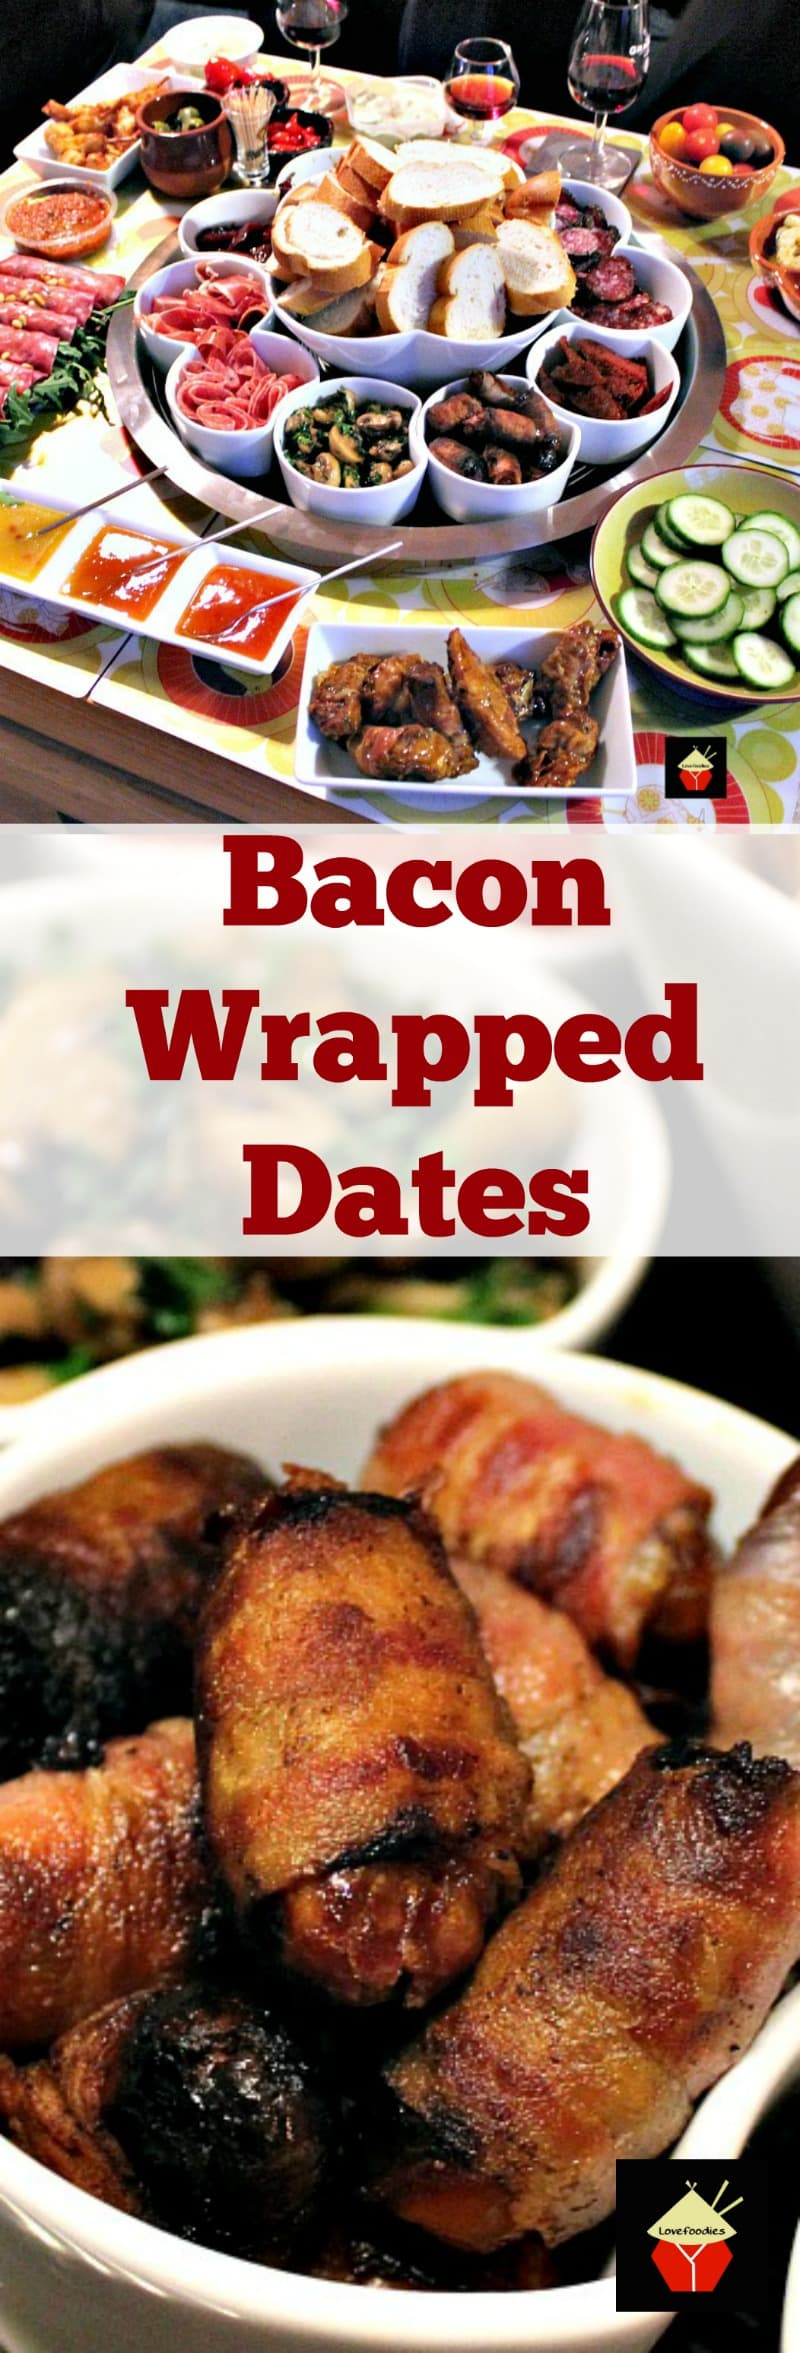 Bacon Wrapped Dates. These make for wonderful party food or part of a Tapas meal and incredibly easy to make. the sweet and salty flavor combination is so delicious! Tapas and Party Food Collection | Lovefoodies.com